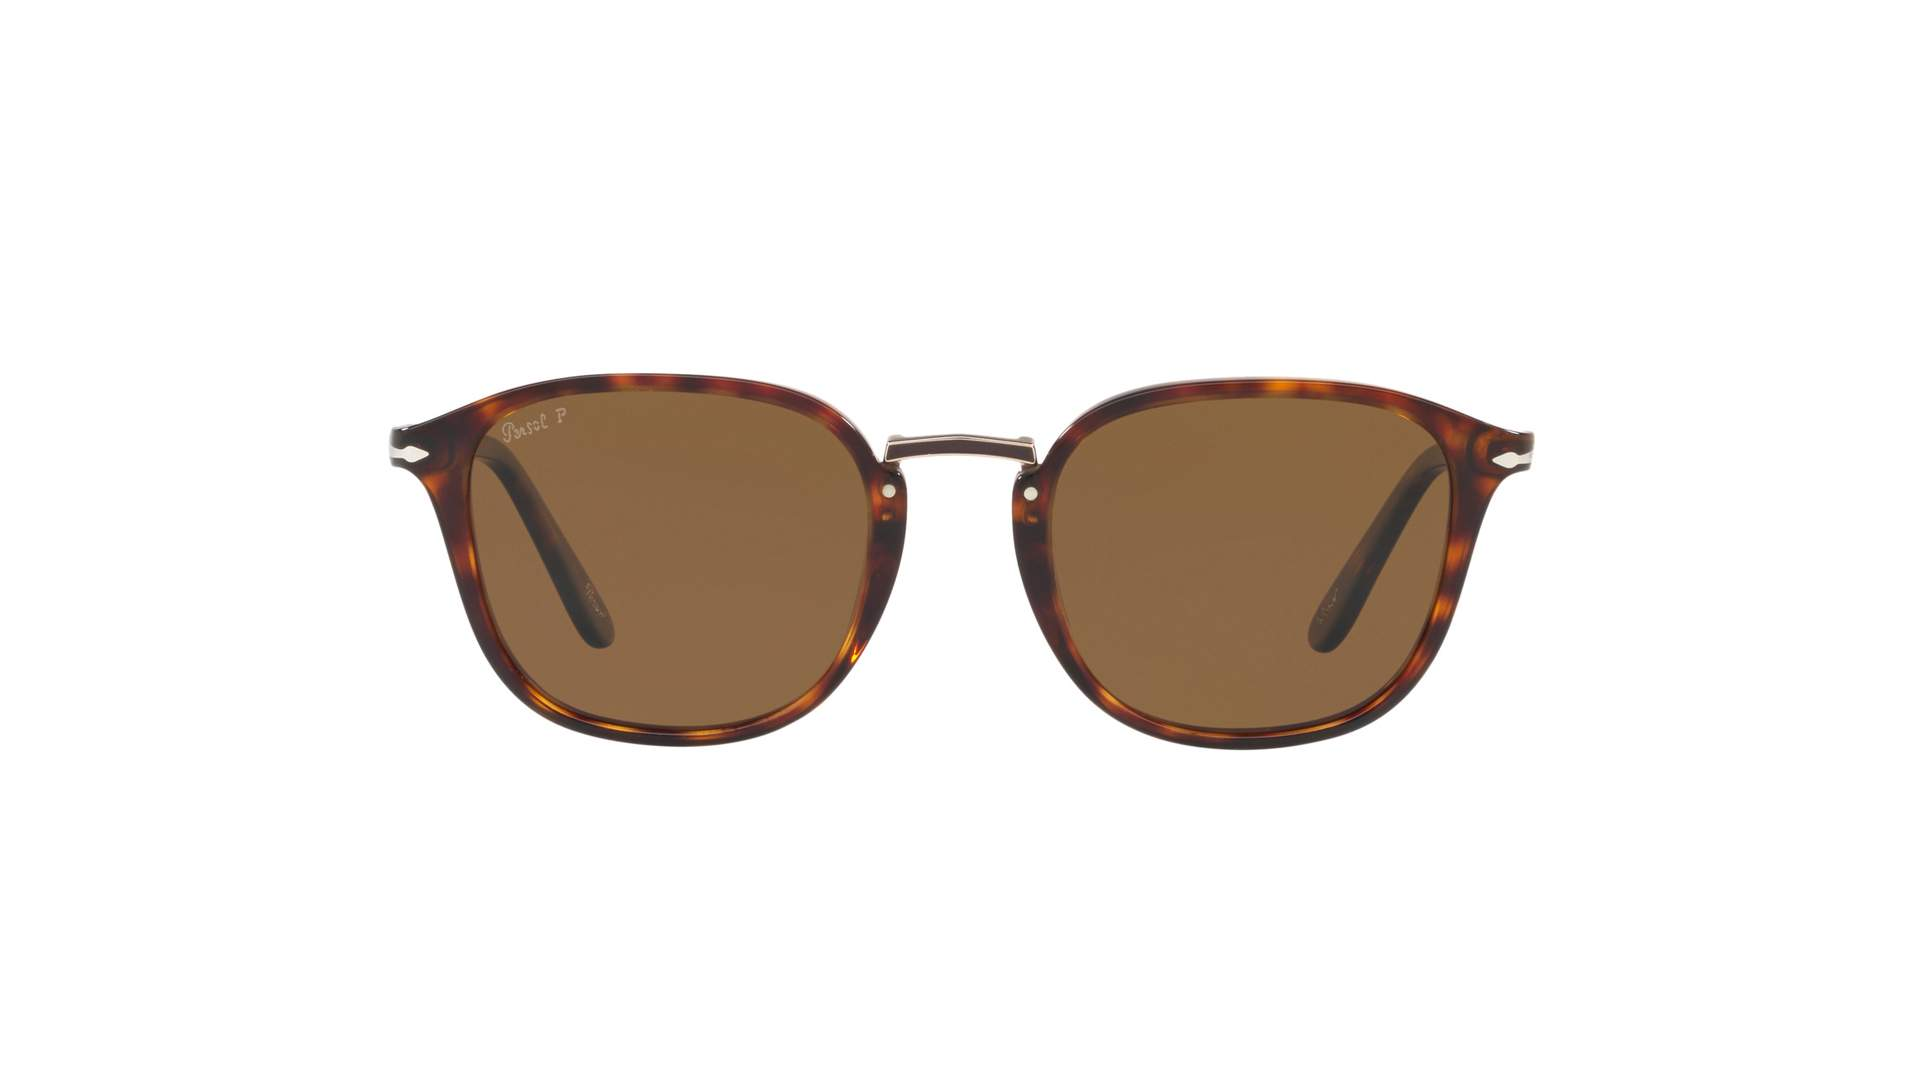 a17d034422d Sunglasses Persol Calligrapher edition Tortoise PO3186S 24 57 51-21 Medium  Polarized